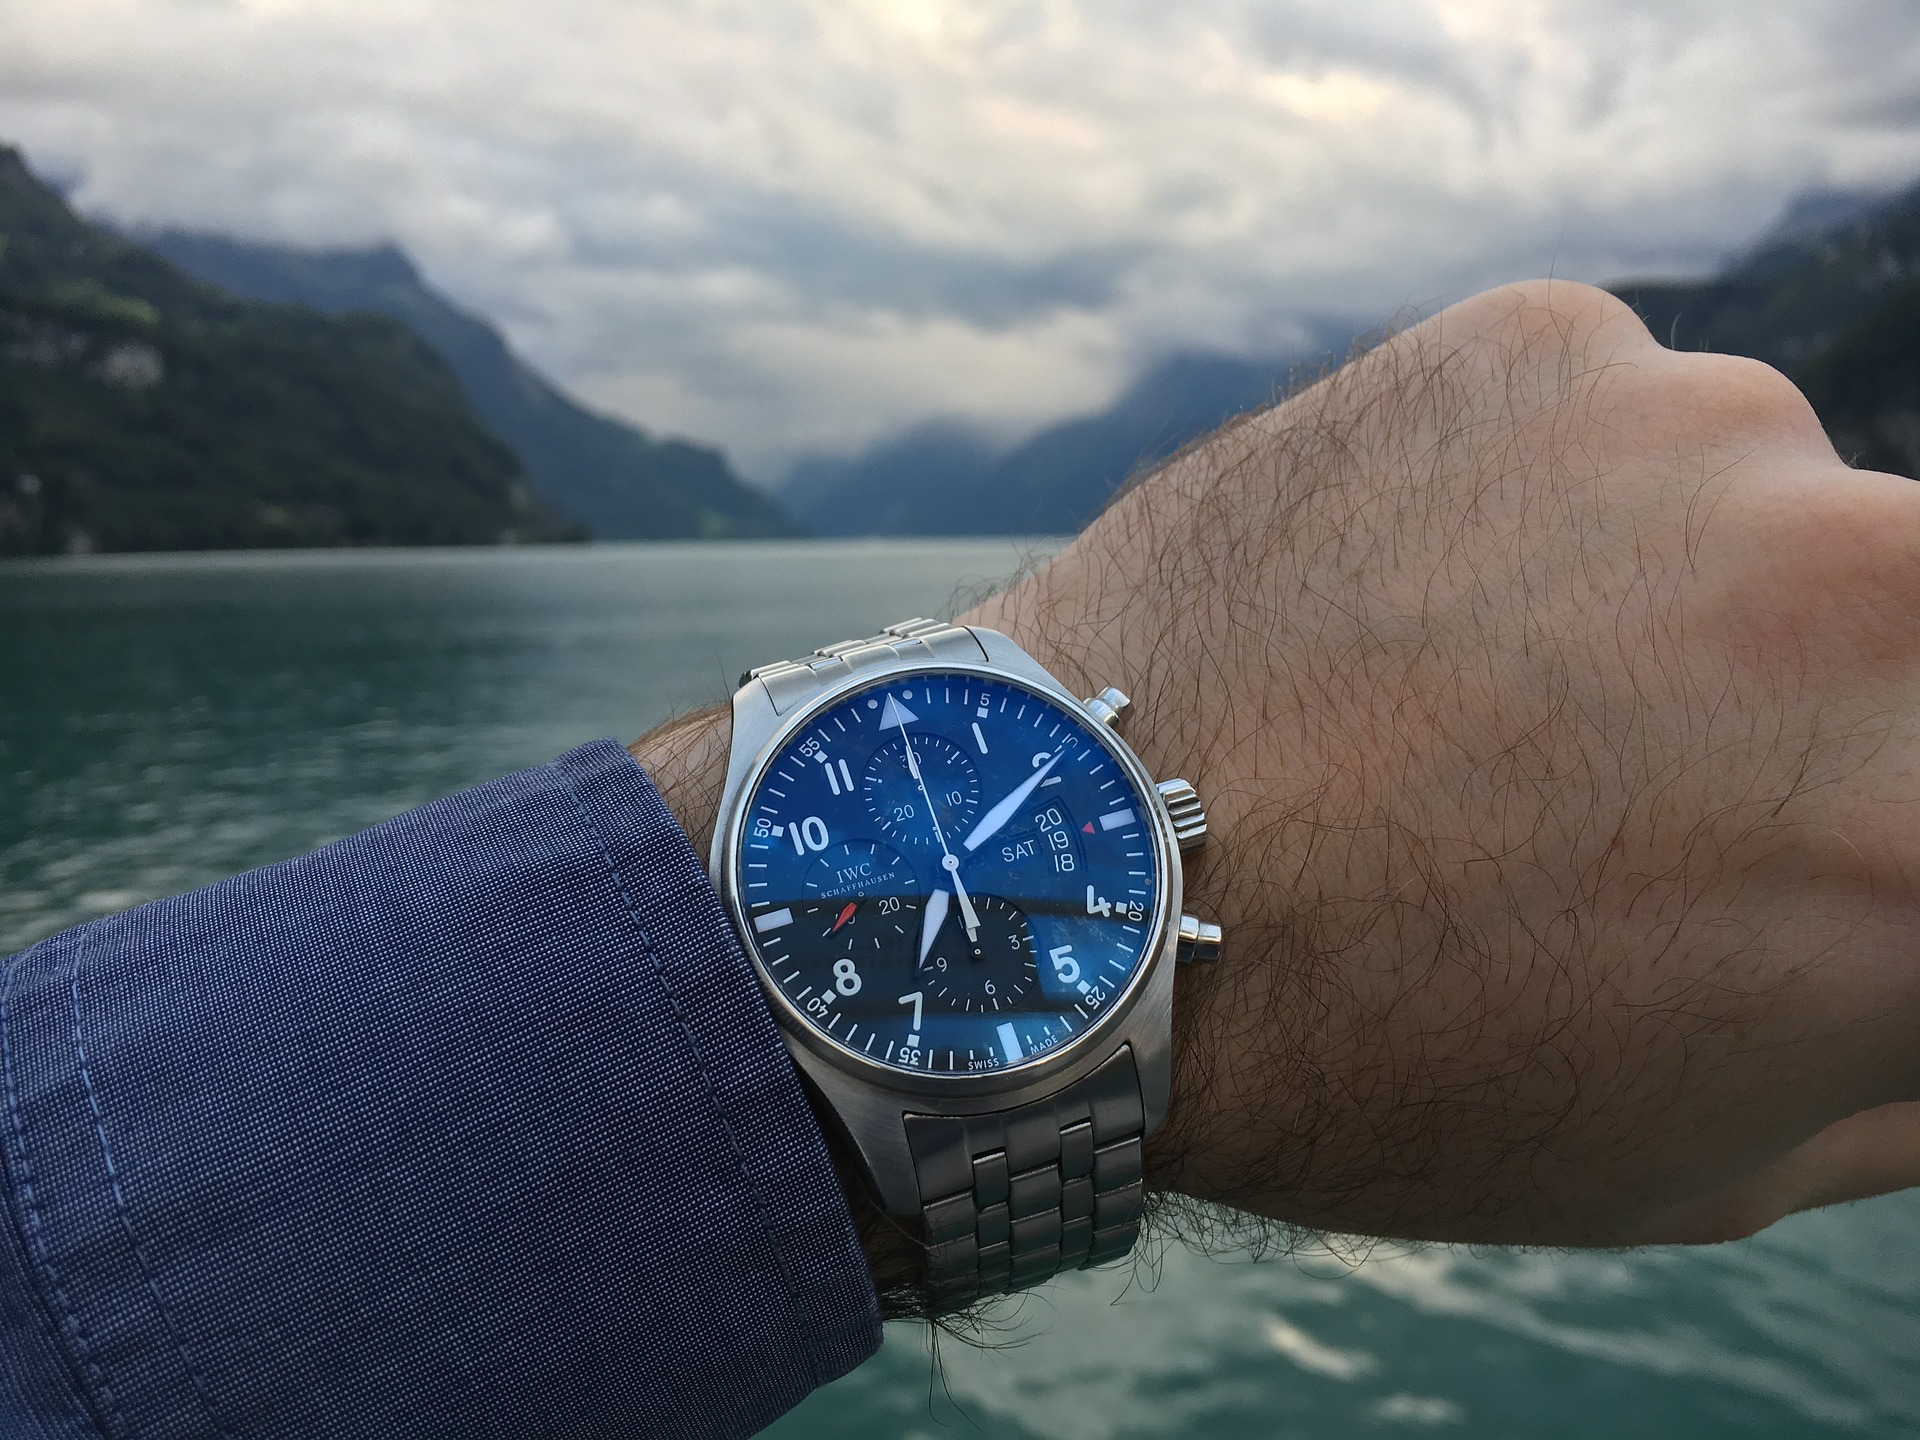 Facts about IWC Watches